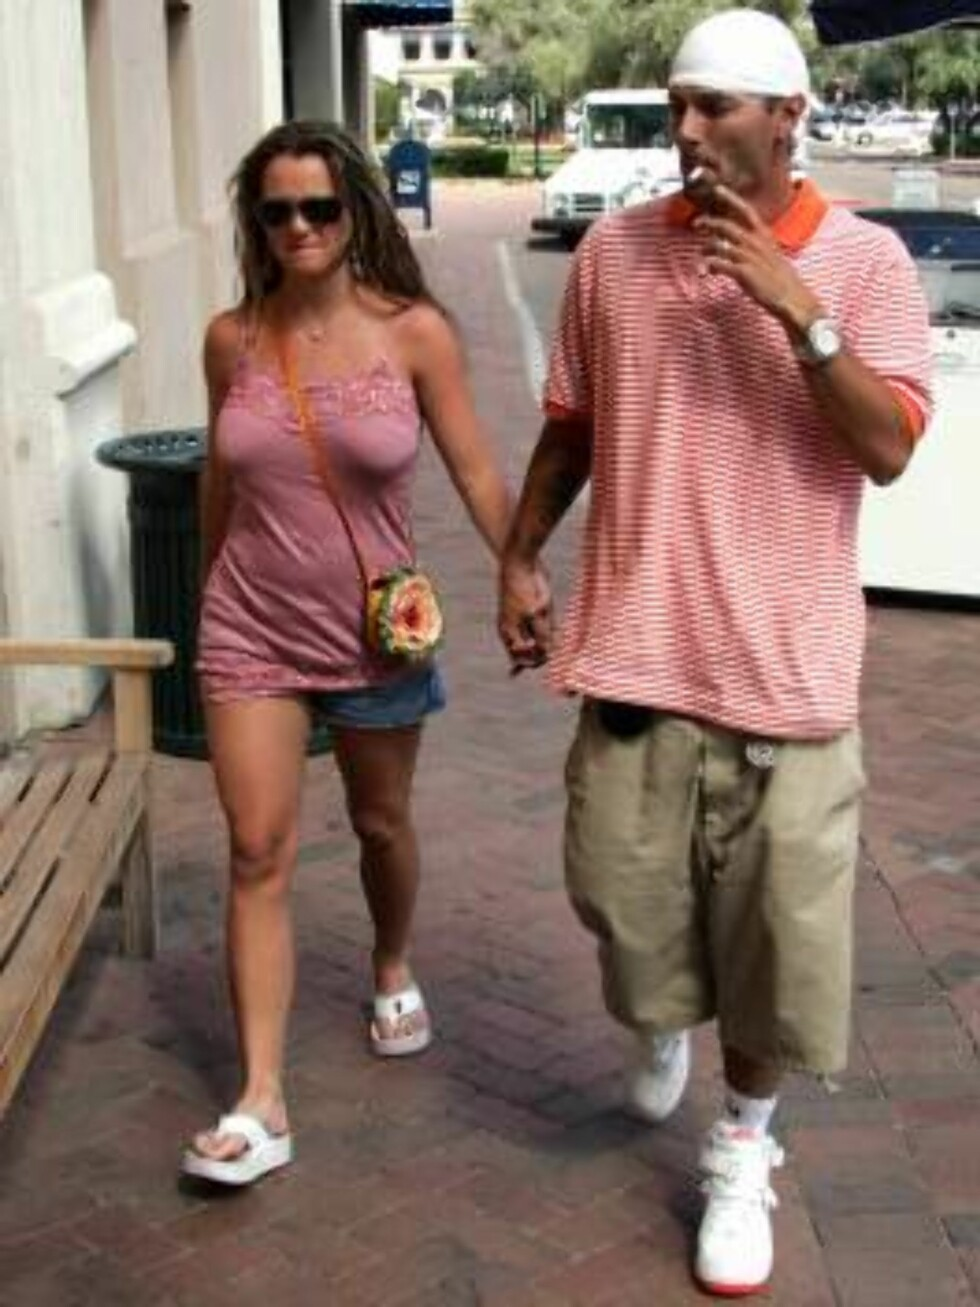 Code: X17XX8 - Ginsburg-Spaly, USA, 23.04.2005: Parents-to-be Britney Spears and Kevin Federline take a stoll while on vacation in the Southwest US.  Spears' waist and bust (!) are definitely expanding as is obvious on the braless Britney.  Kevin continue Foto: All Over Press